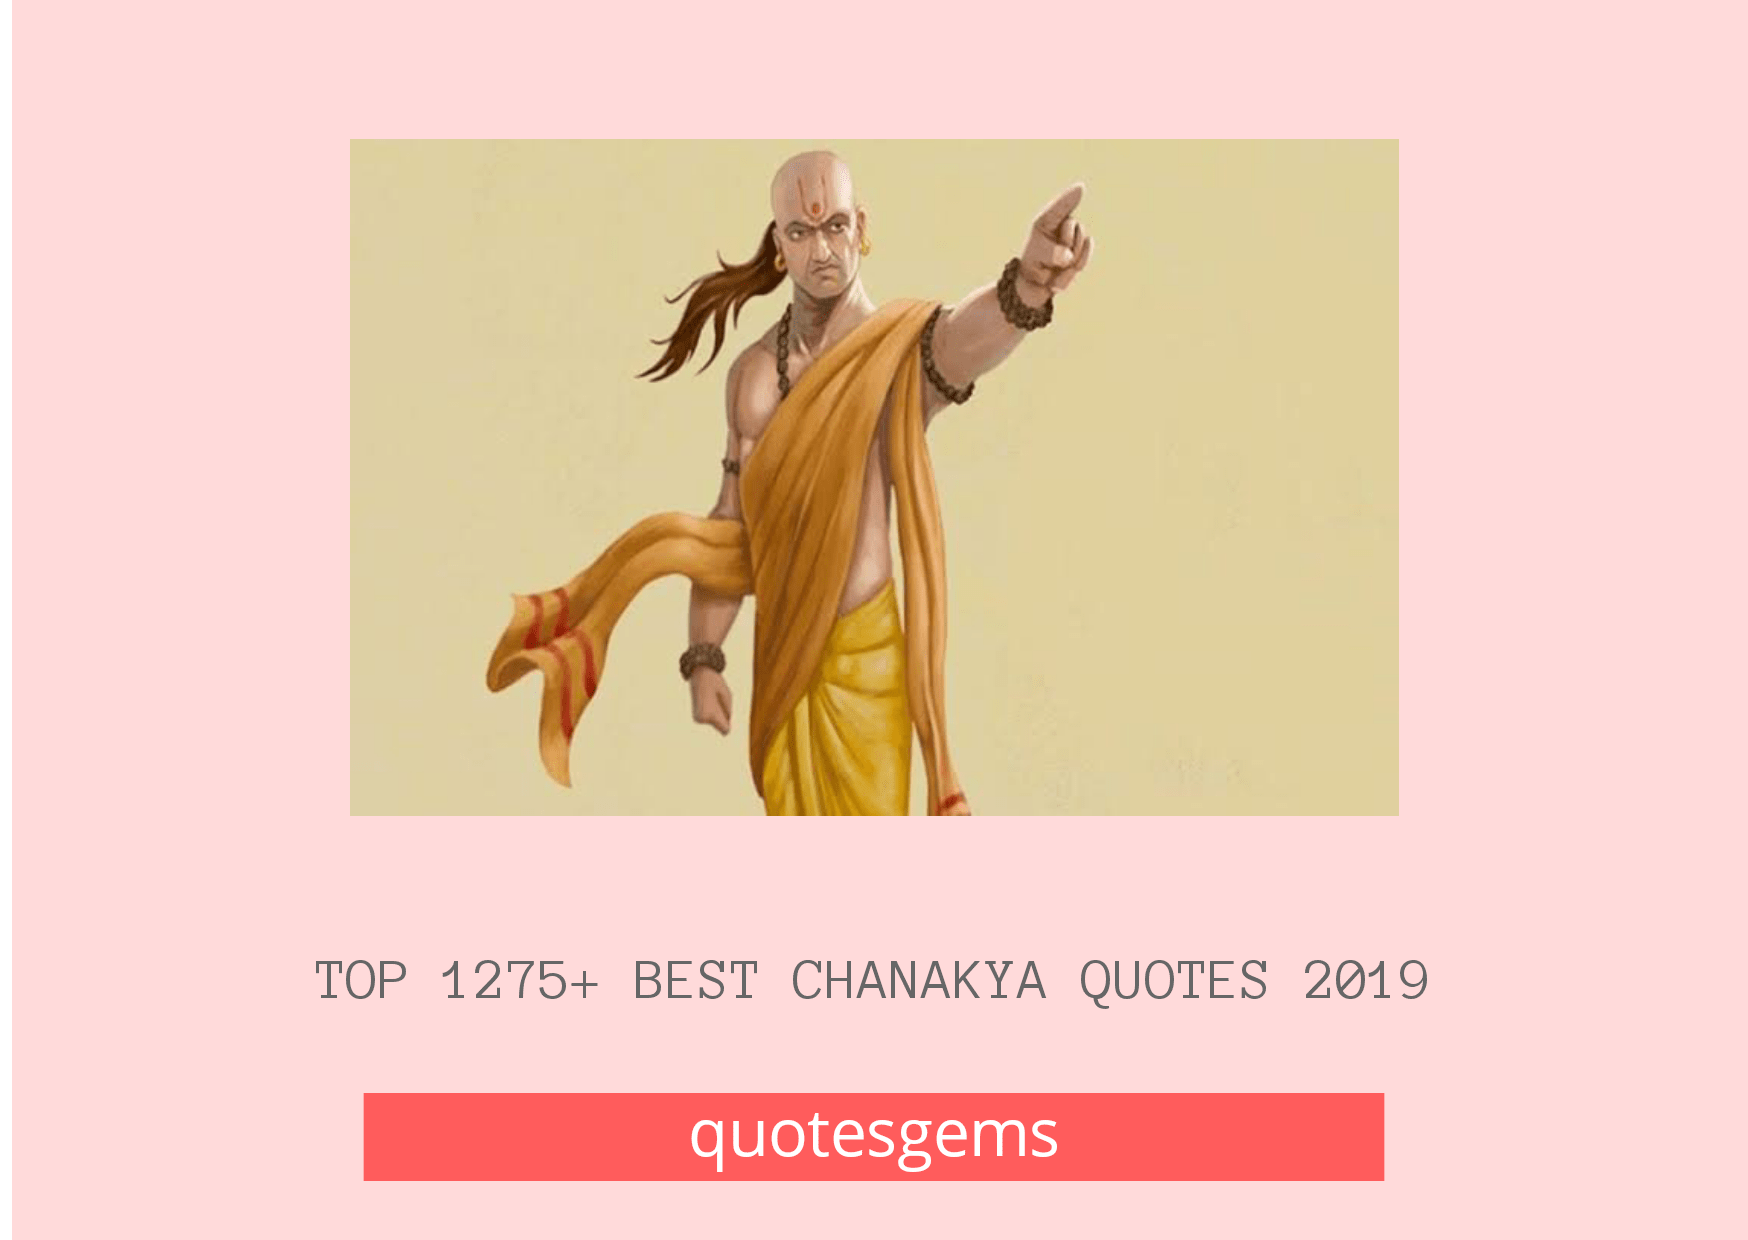 Best Chanakya Quotes 2019